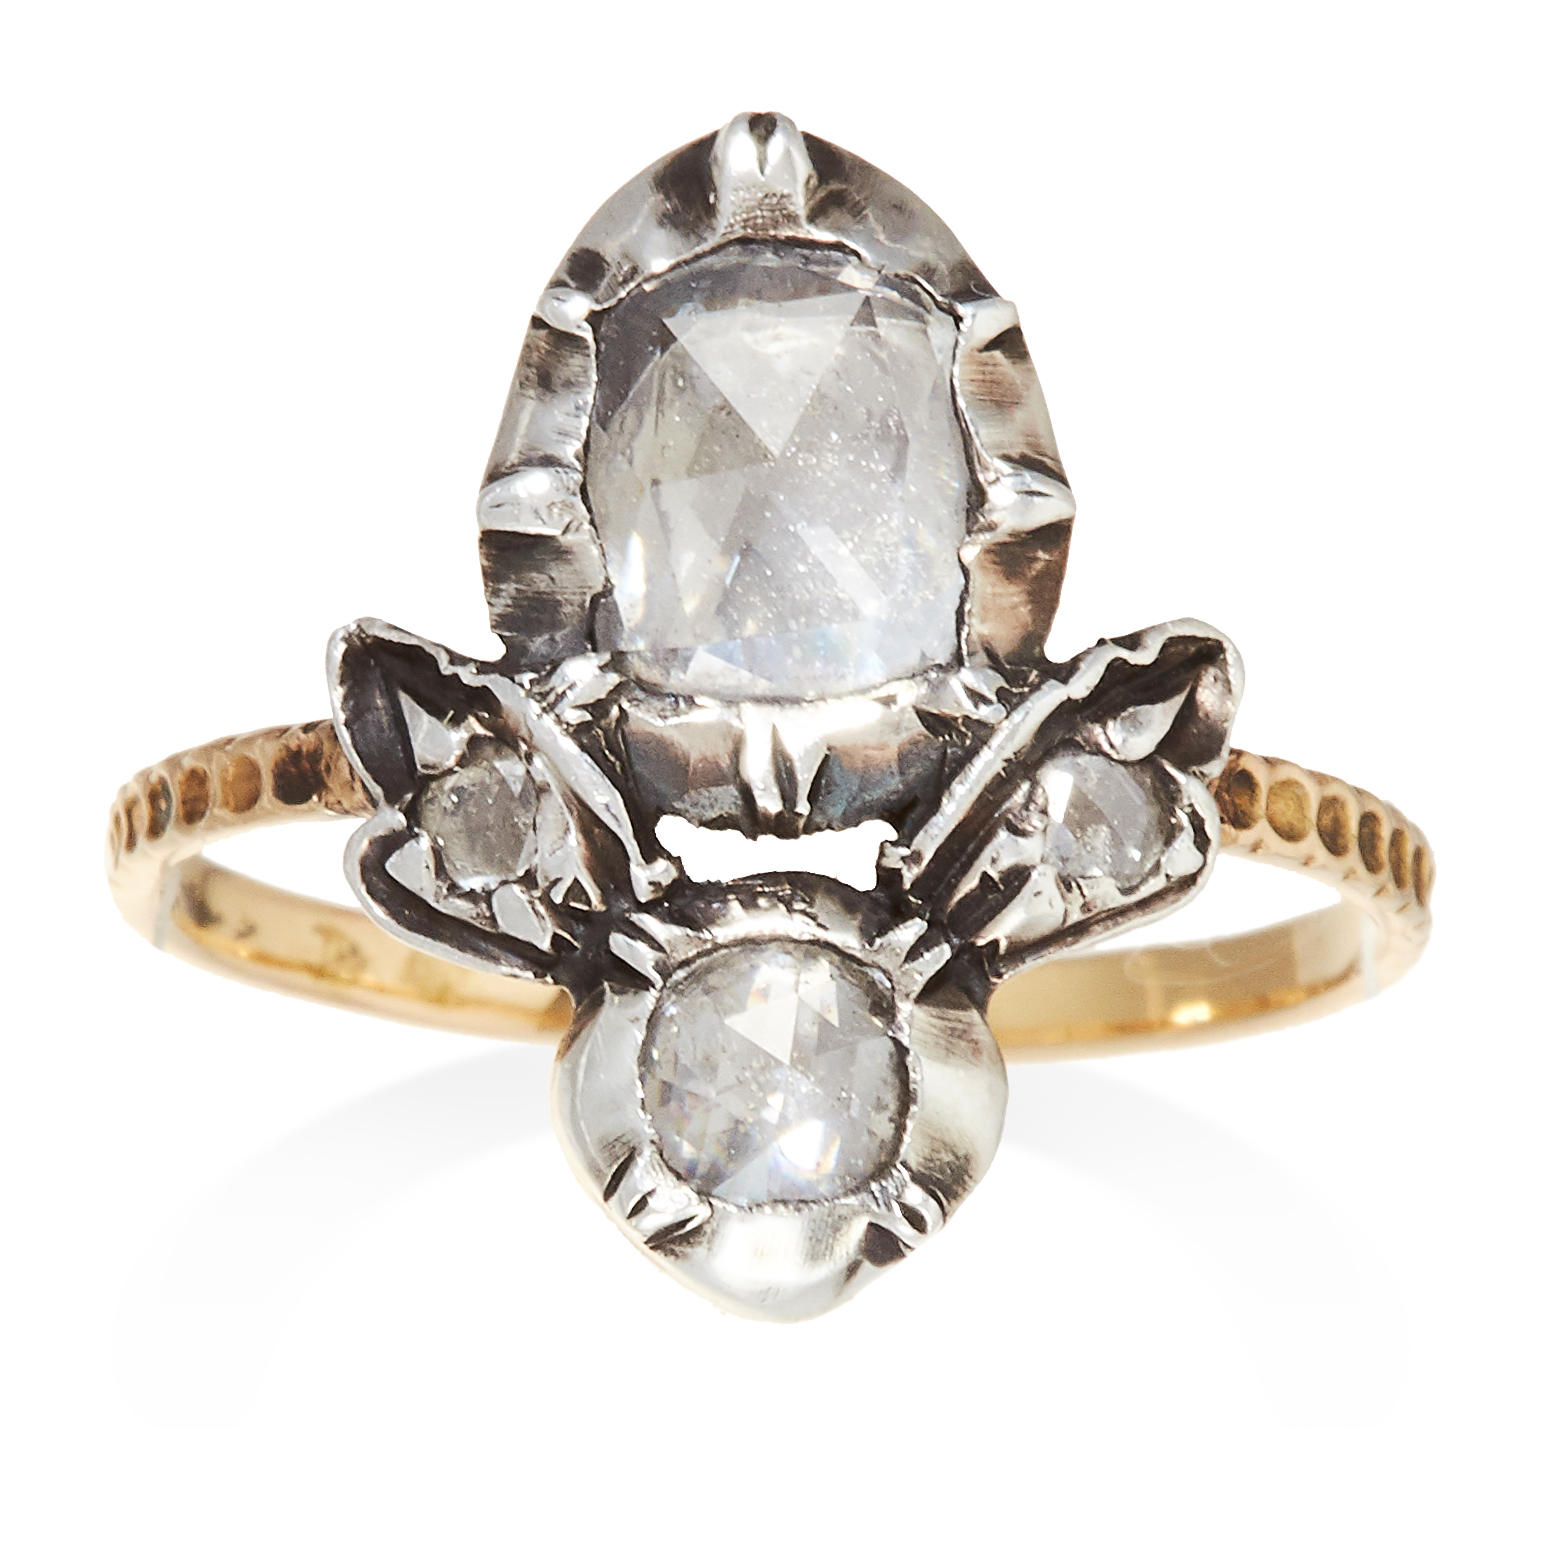 Los 28 - AN ANTIQUE DIAMOND RING, CIRCA 1800 in yellow gold and silver, set with a rose cut diamond within an